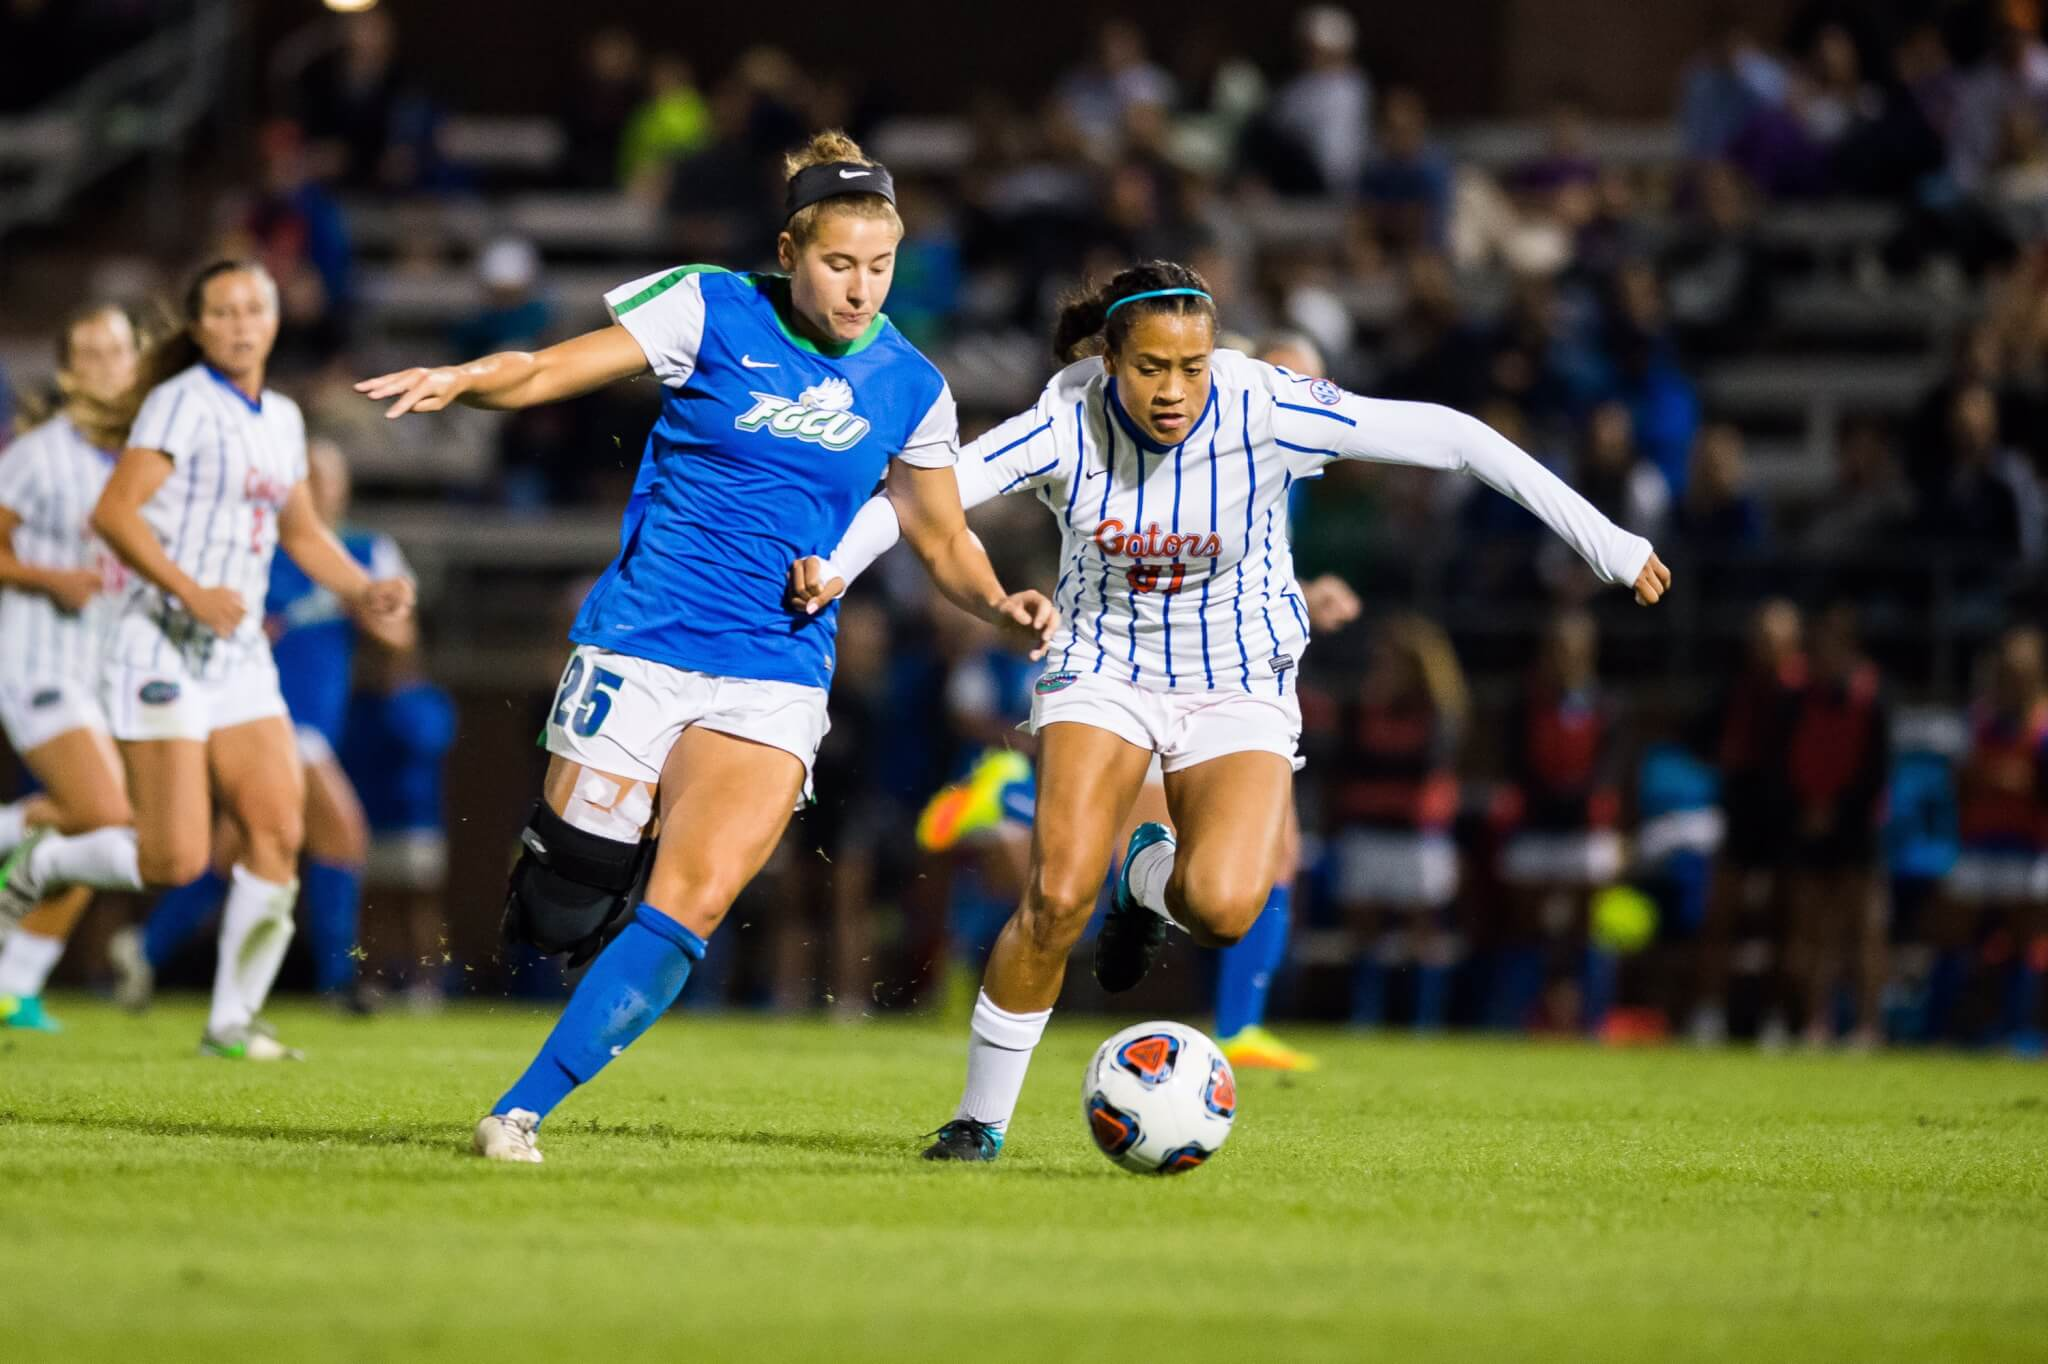 FGCU women's soccer falls to UF 3-0 in the first round of NCAA tournament